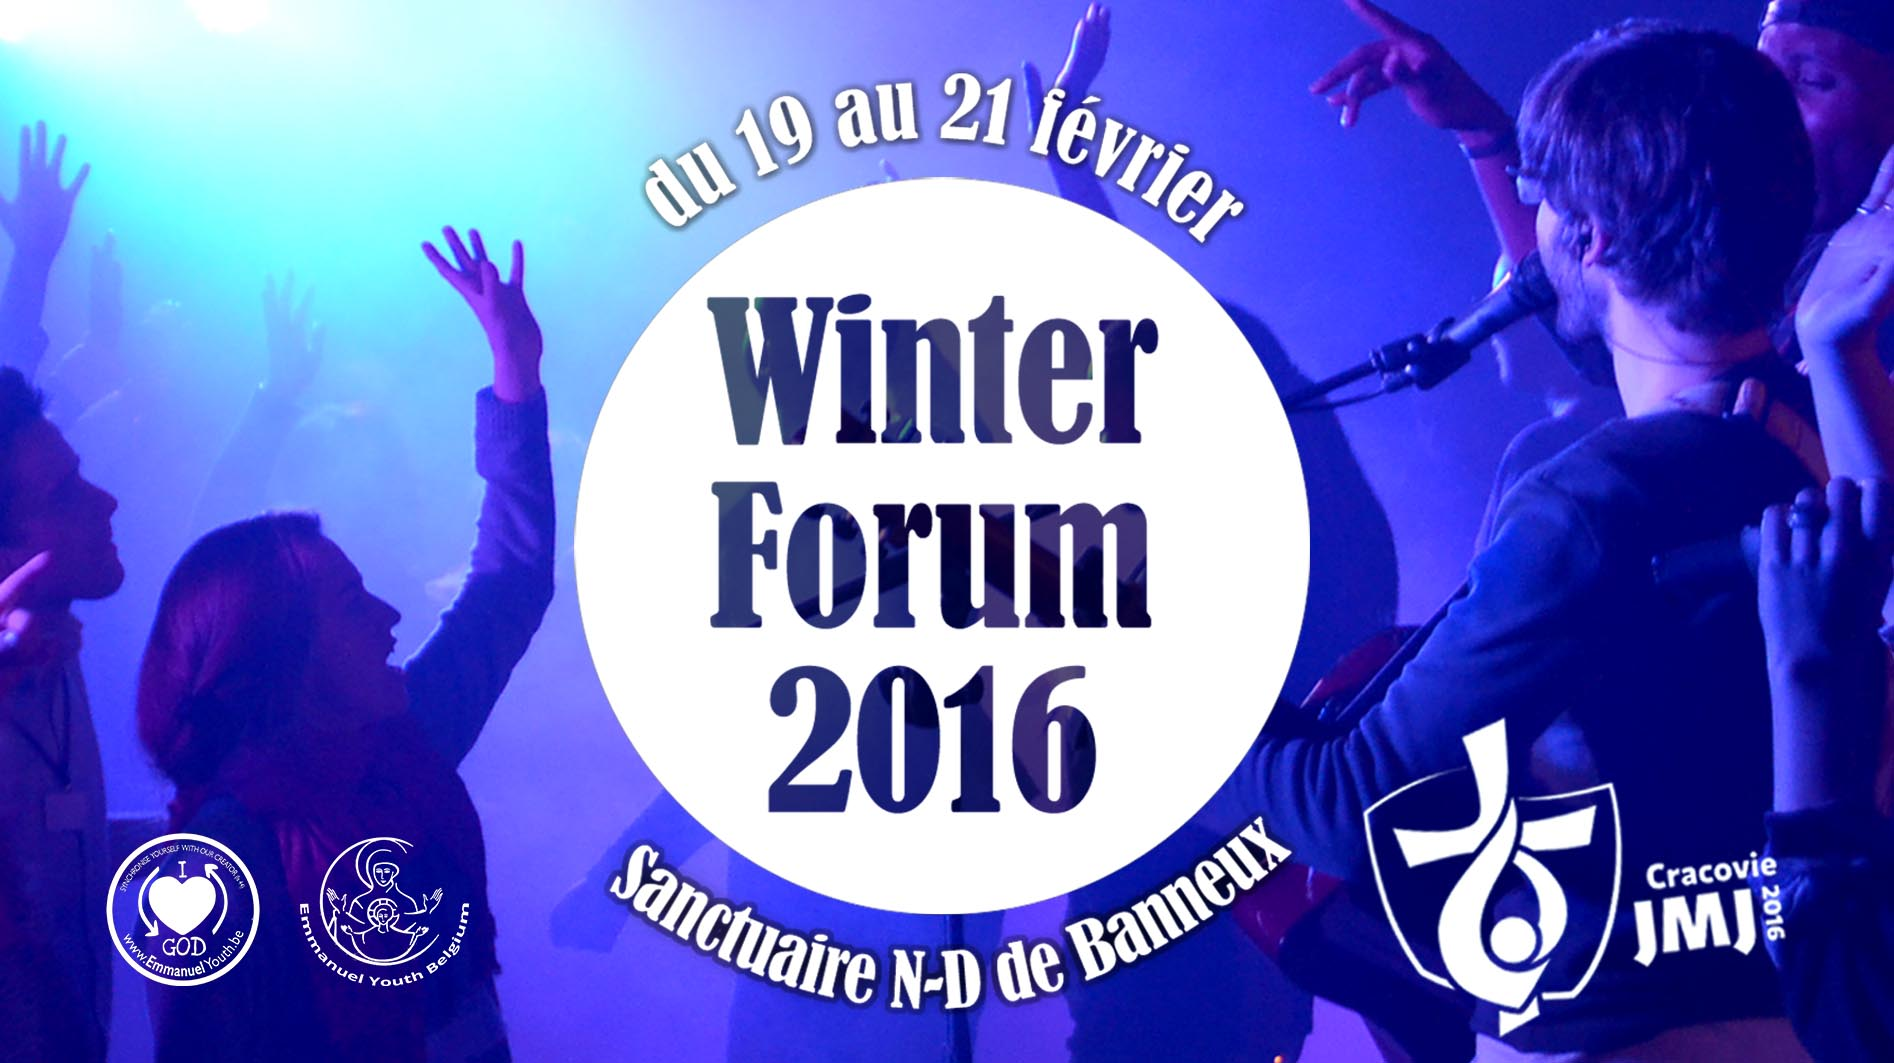 Winter Forum - Forum d'hivers 2016